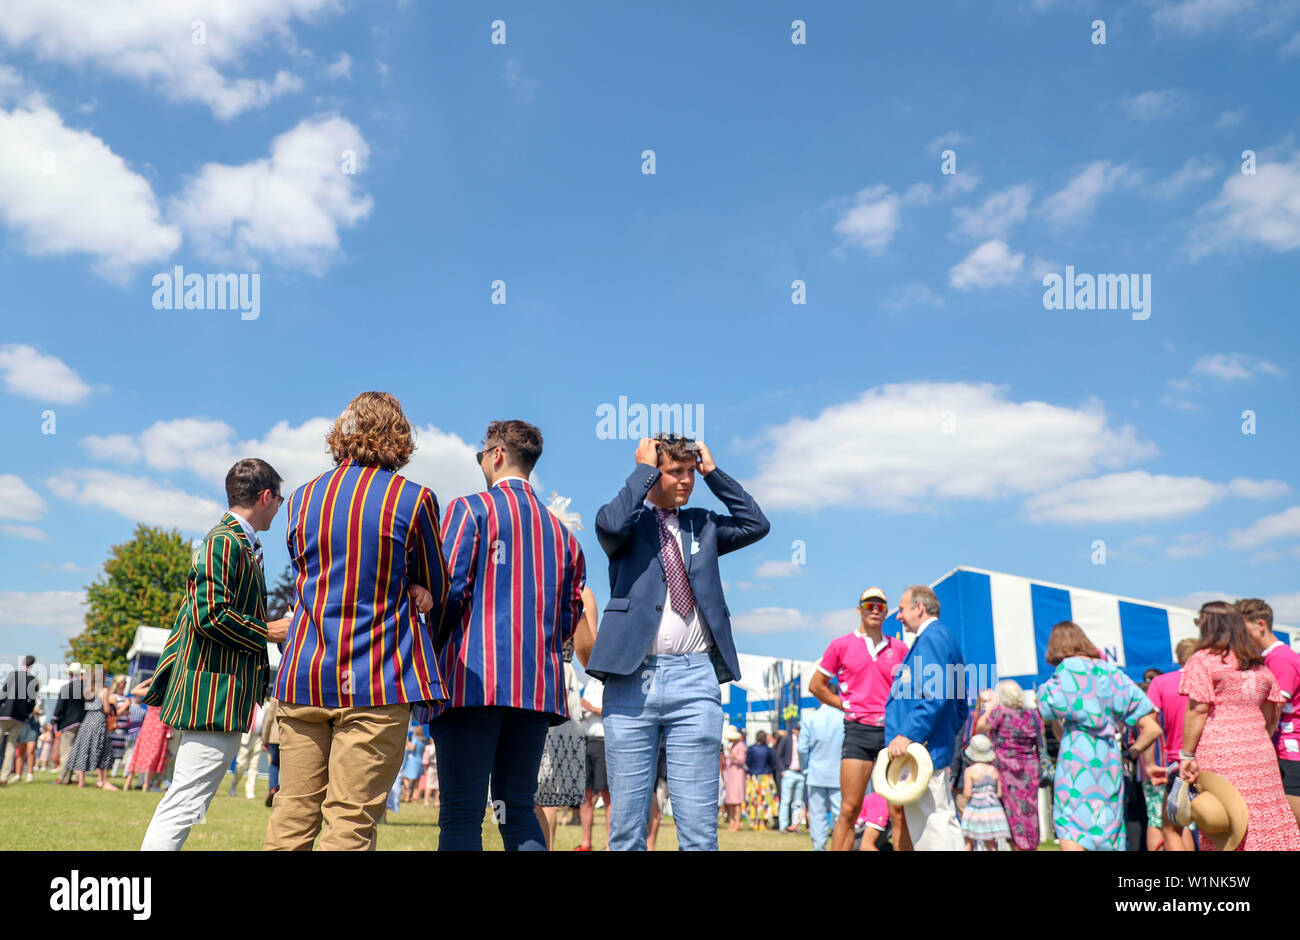 Spectators on the opening day of the 2019 Henley Royal Regatta alongside the river Thames. - Stock Image